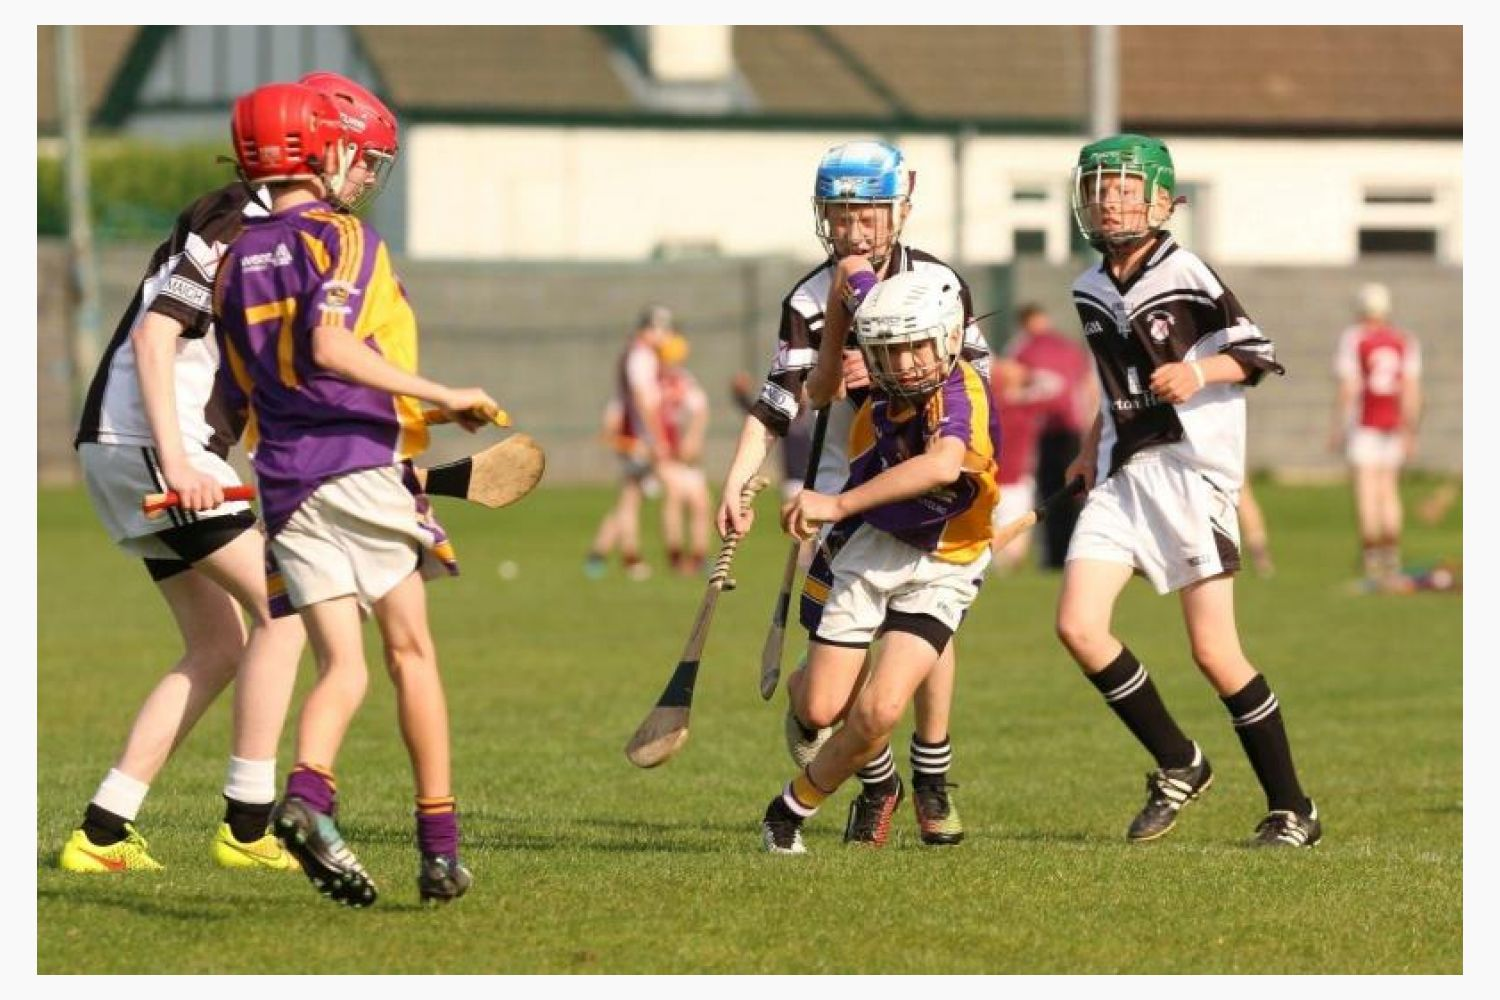 2015 7's - Crokes win Under 13 Competition